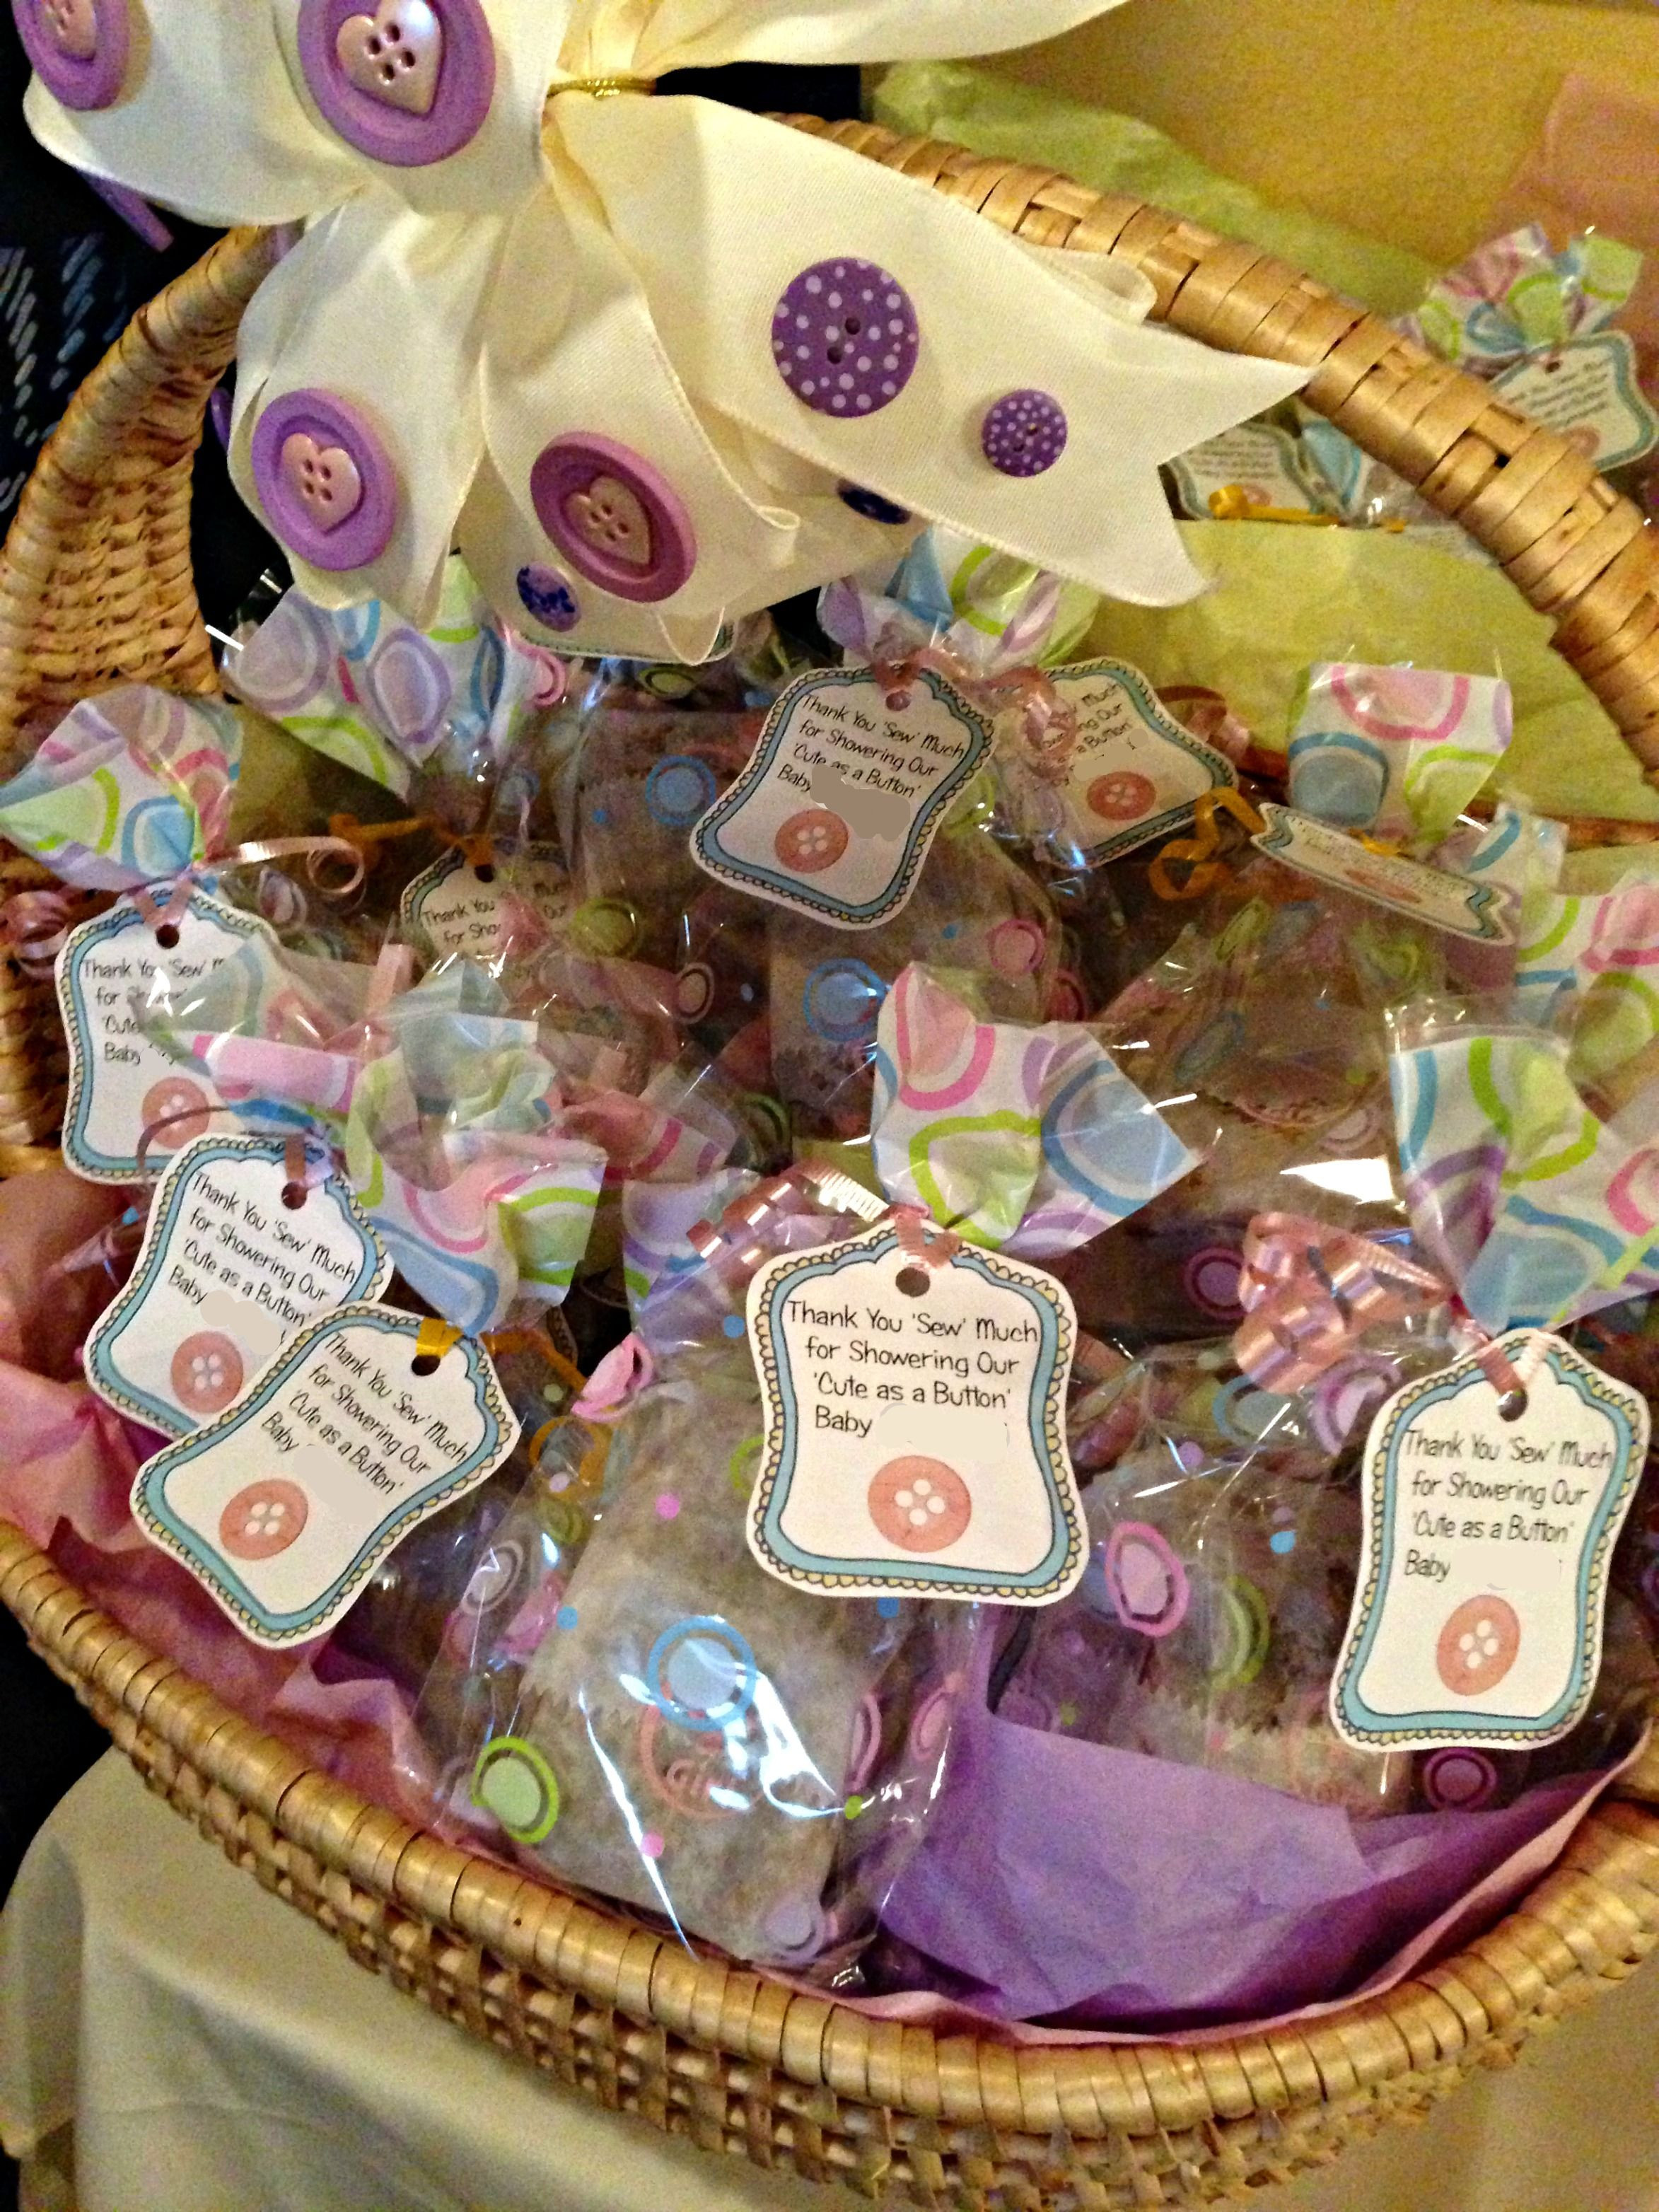 """DIY Baby Shower Party Favors  Cute As A Button baby shower favors """"Thank you SEW much"""